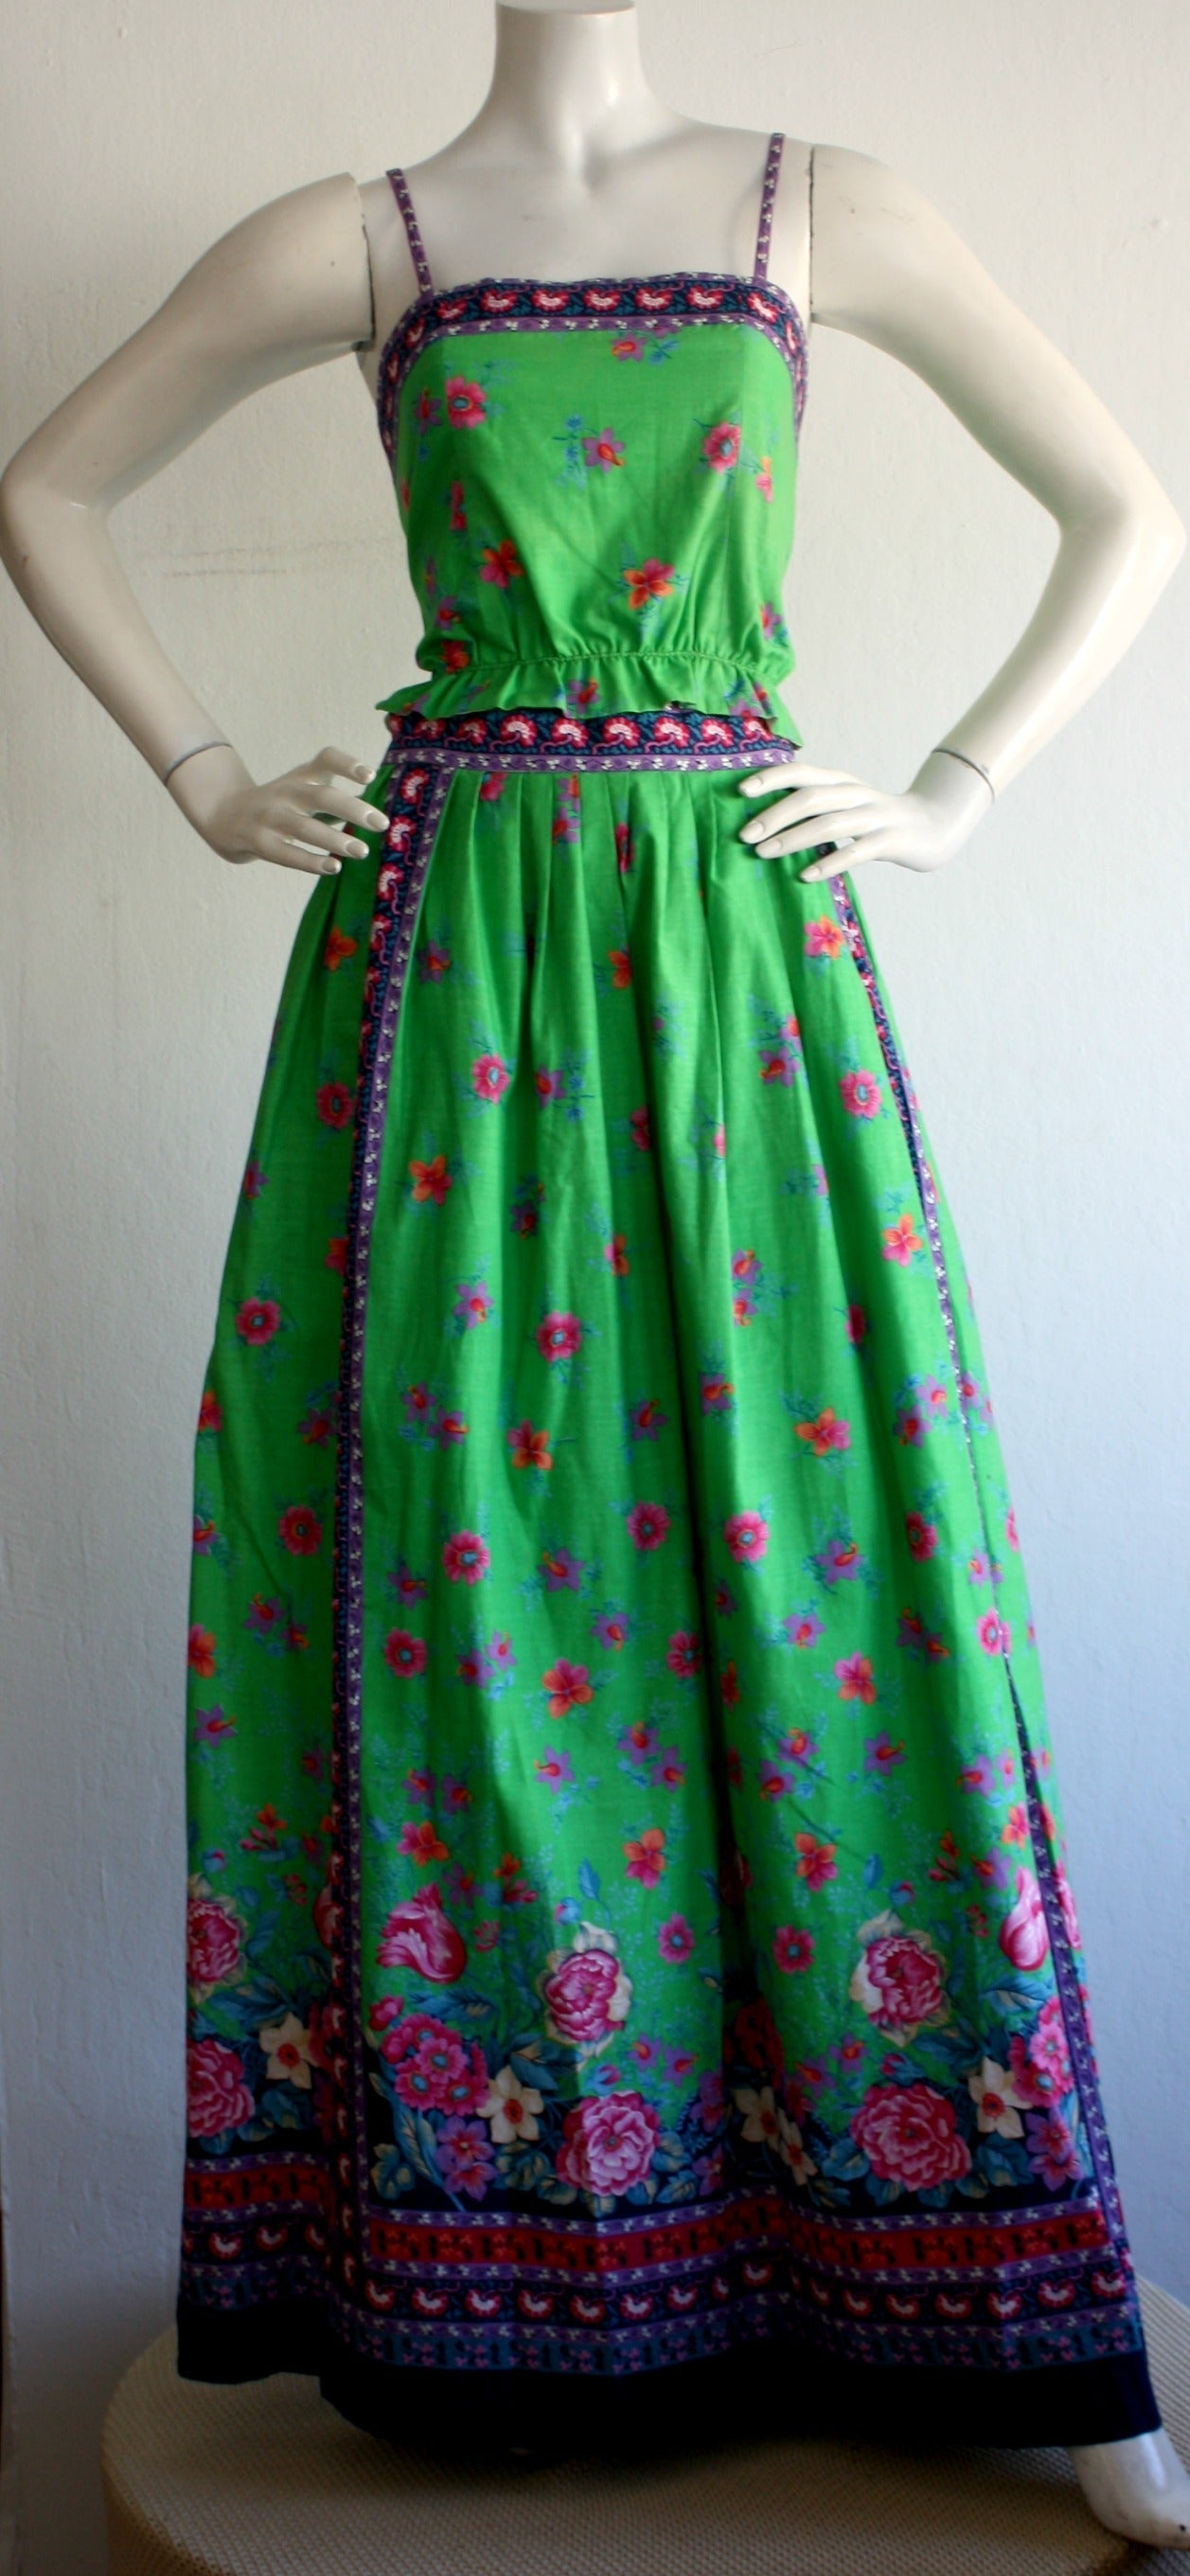 1960s Vintage Tina Leser Green Floral Print 2 - Piece Dress Ensemble In Excellent Condition For Sale In San Francisco, CA